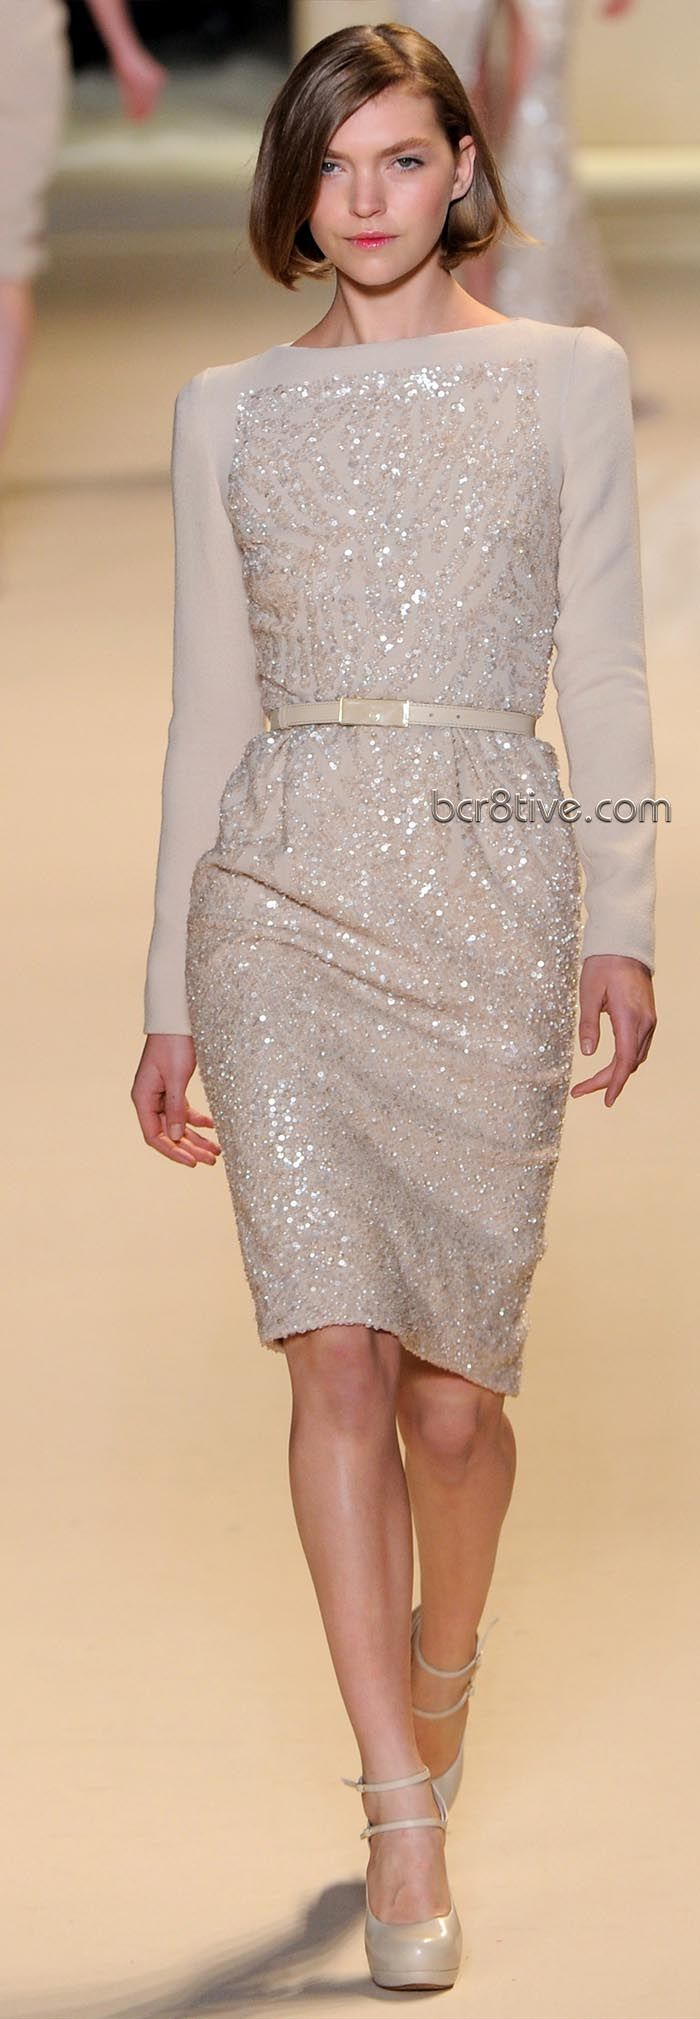 Elie Saab Fall Winter 2011 - 2012 Ready To Wear Collection | MY ...